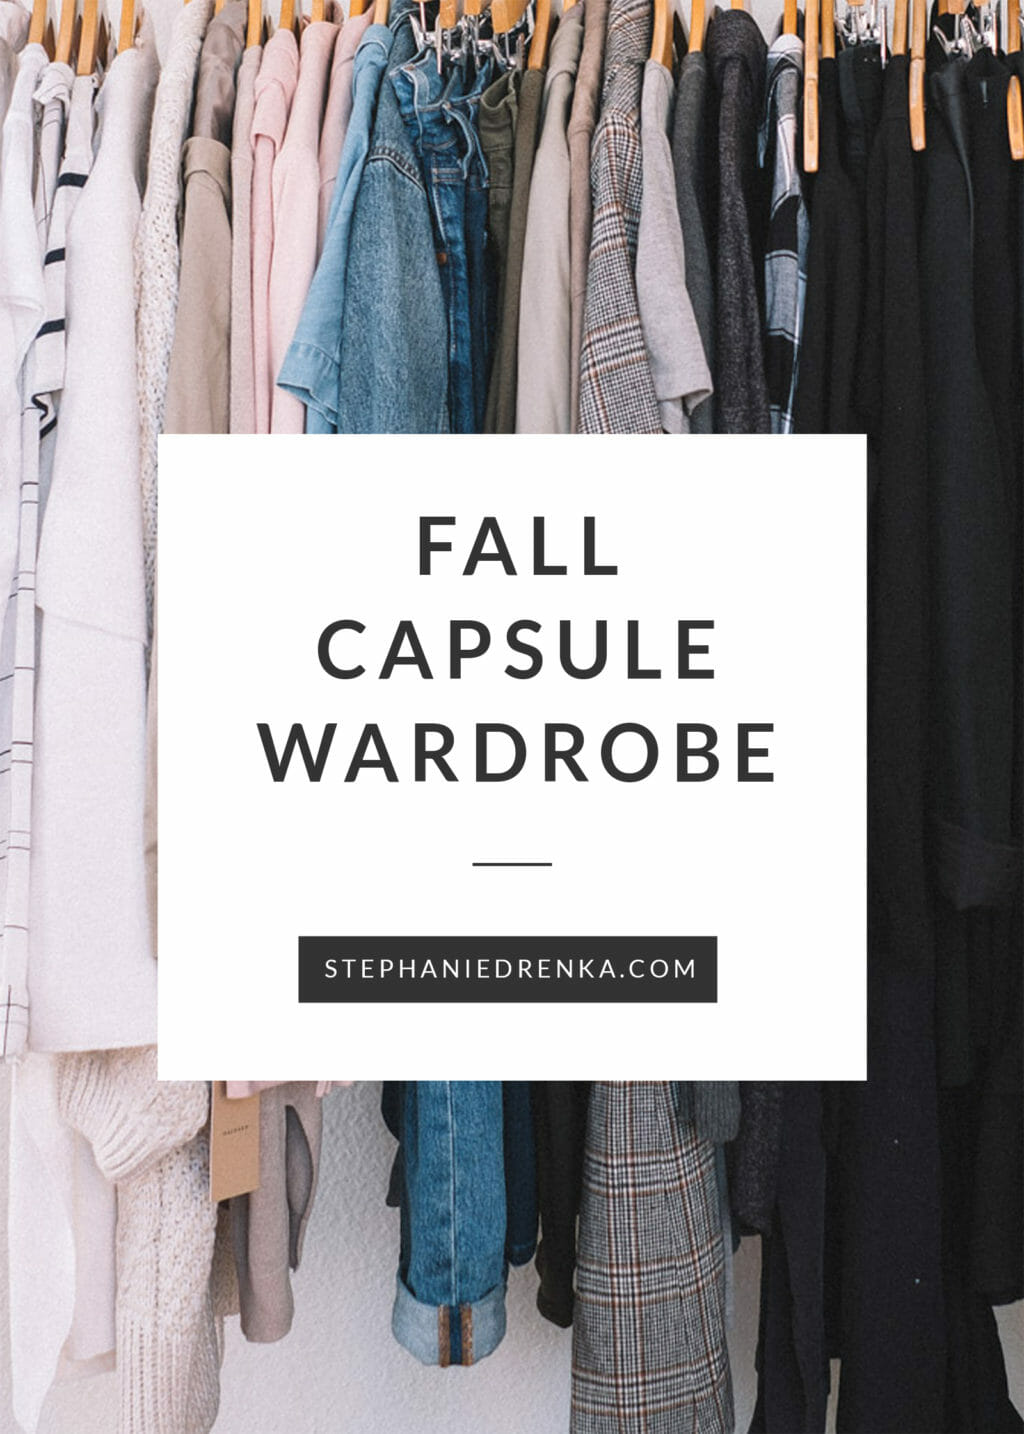 Fall Capsule Wardrobe From H M: Fall Capsule Wardrobe For 2018